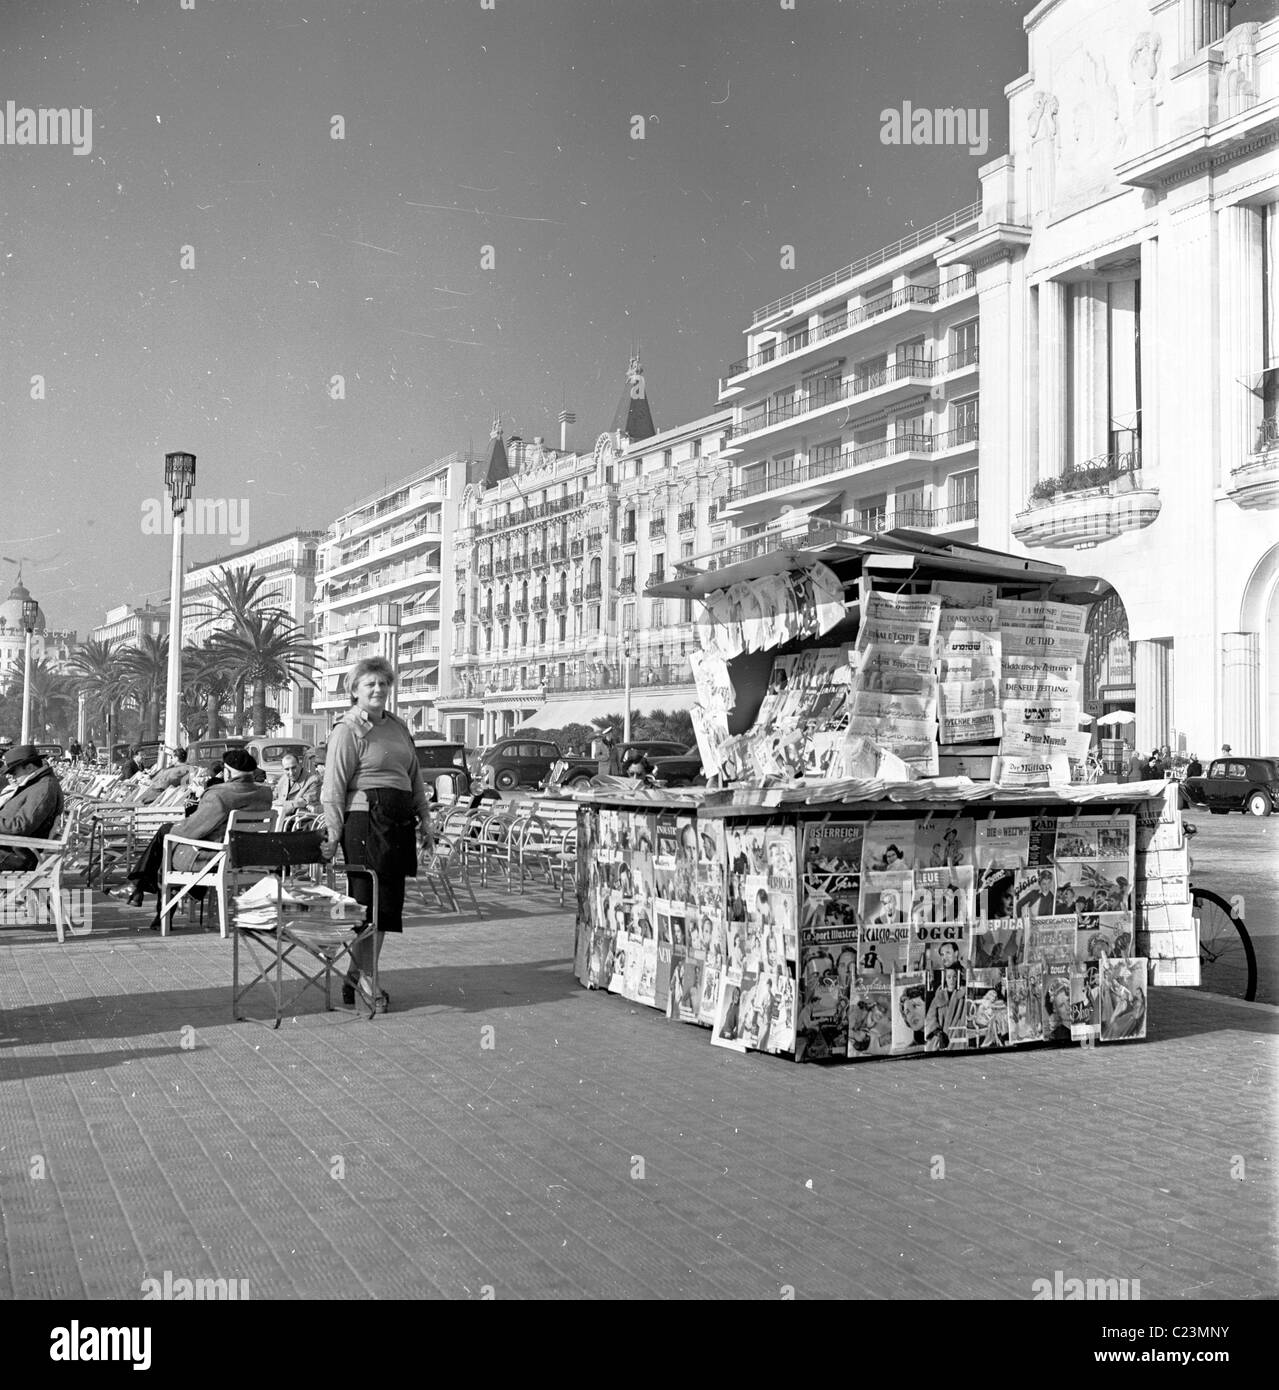 1950s. France.  Newspaper and magazine stall on the promenade at Cannes in this historical photograph by J Allan - Stock Image